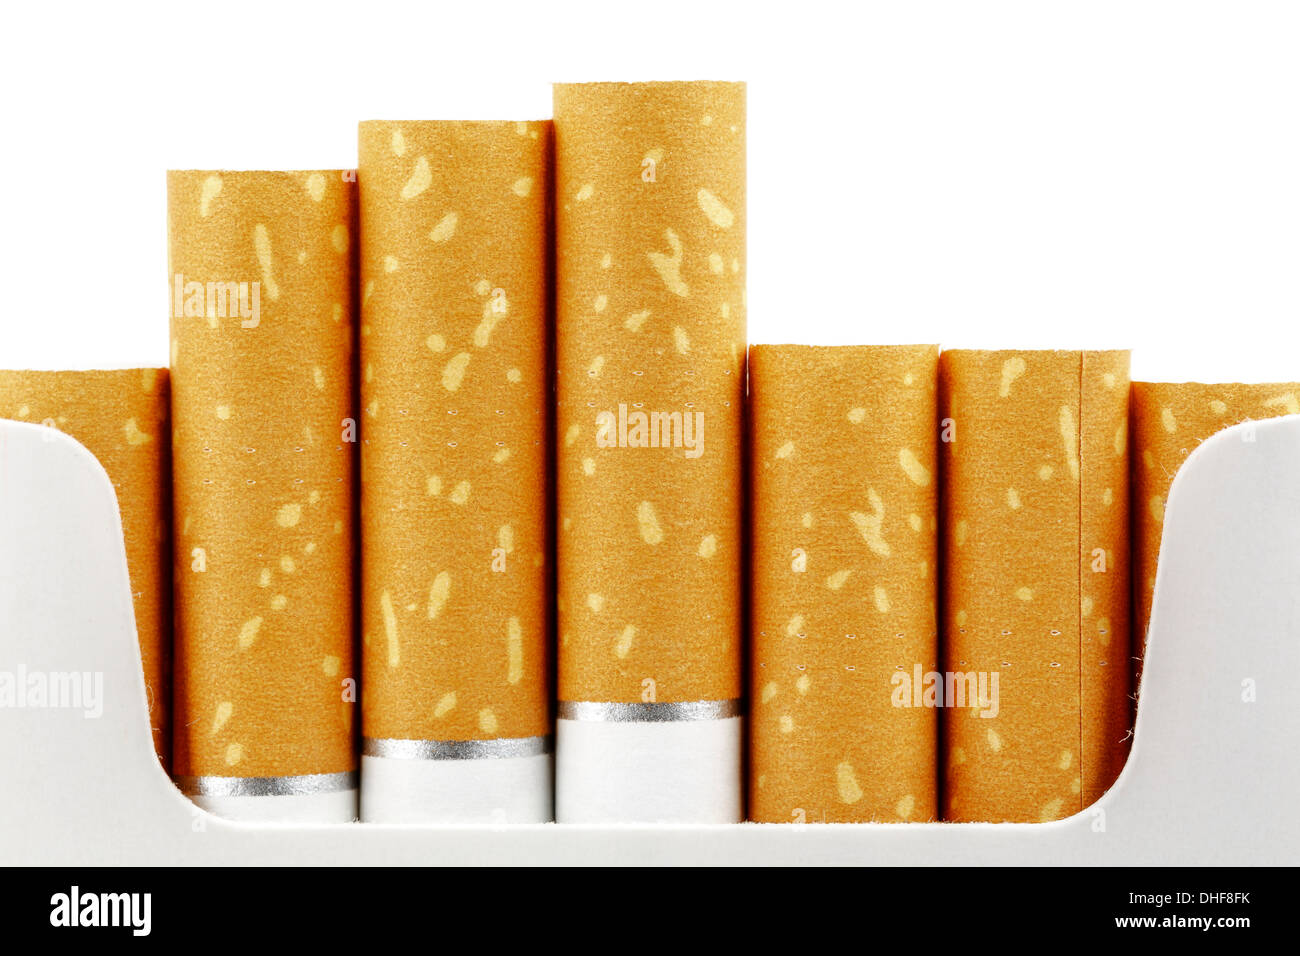 Cigarette filters put forward from the pack - Stock Image